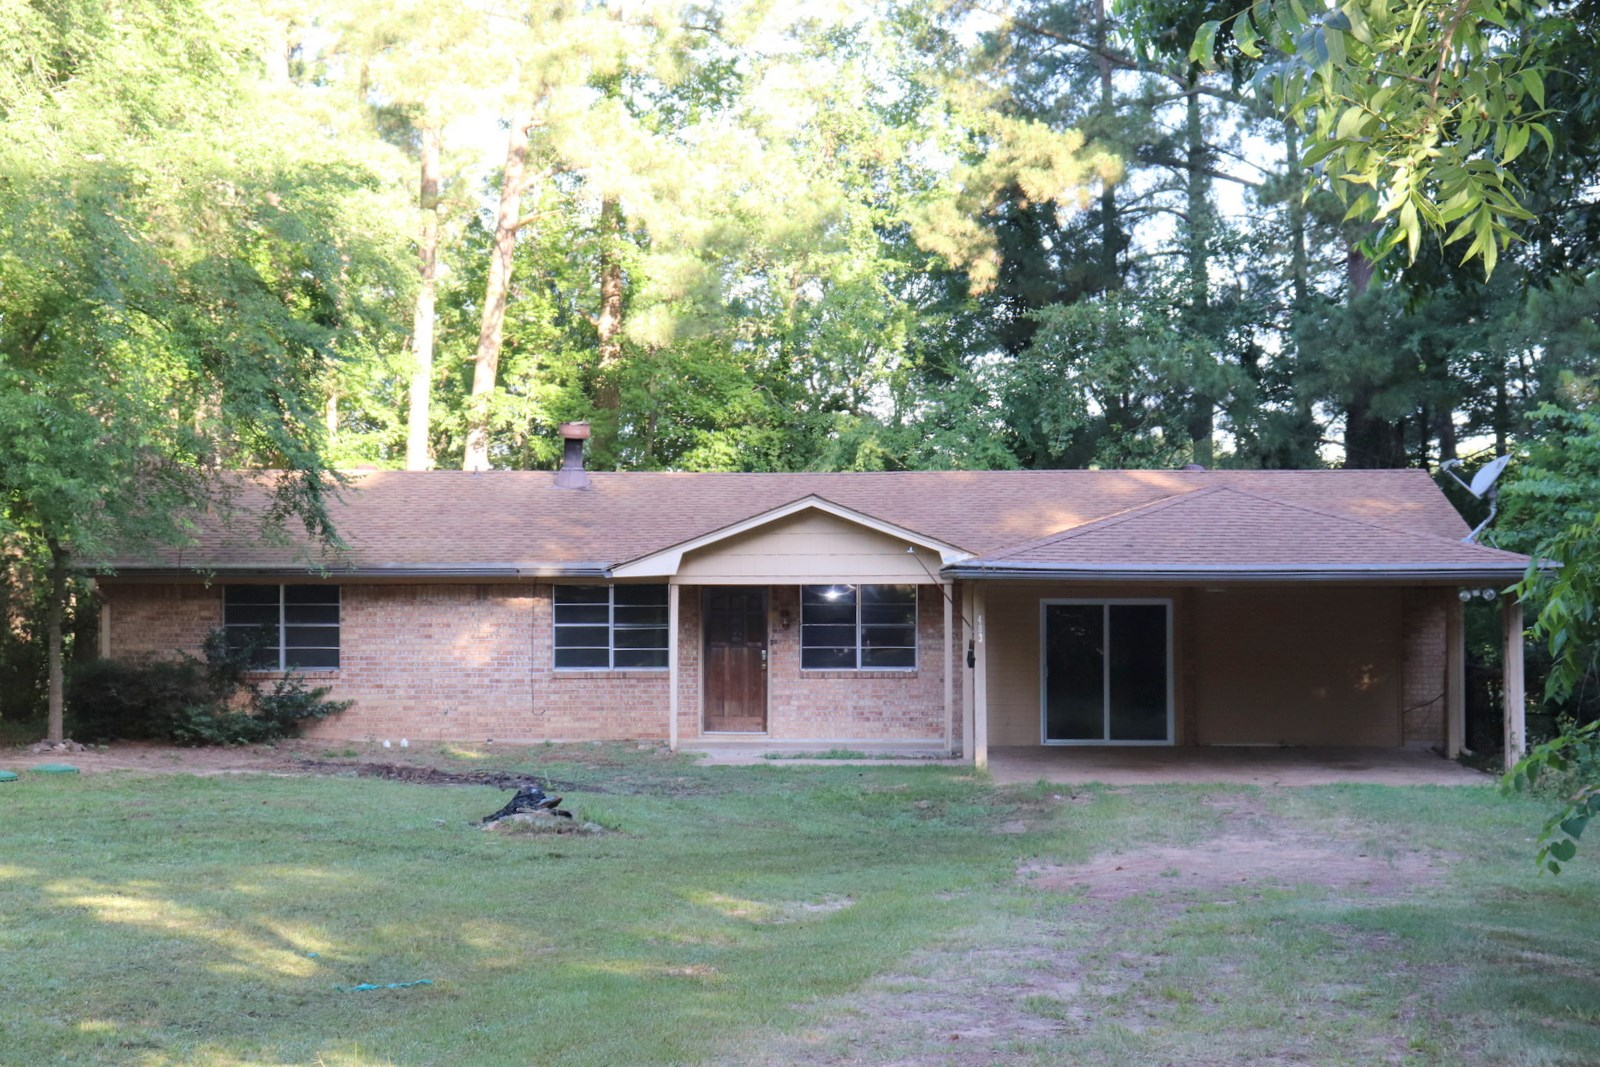 LAKEFRONT 3/2 IN QUITMAN, WOOD COUNTY TEXAS NEEDS TLC